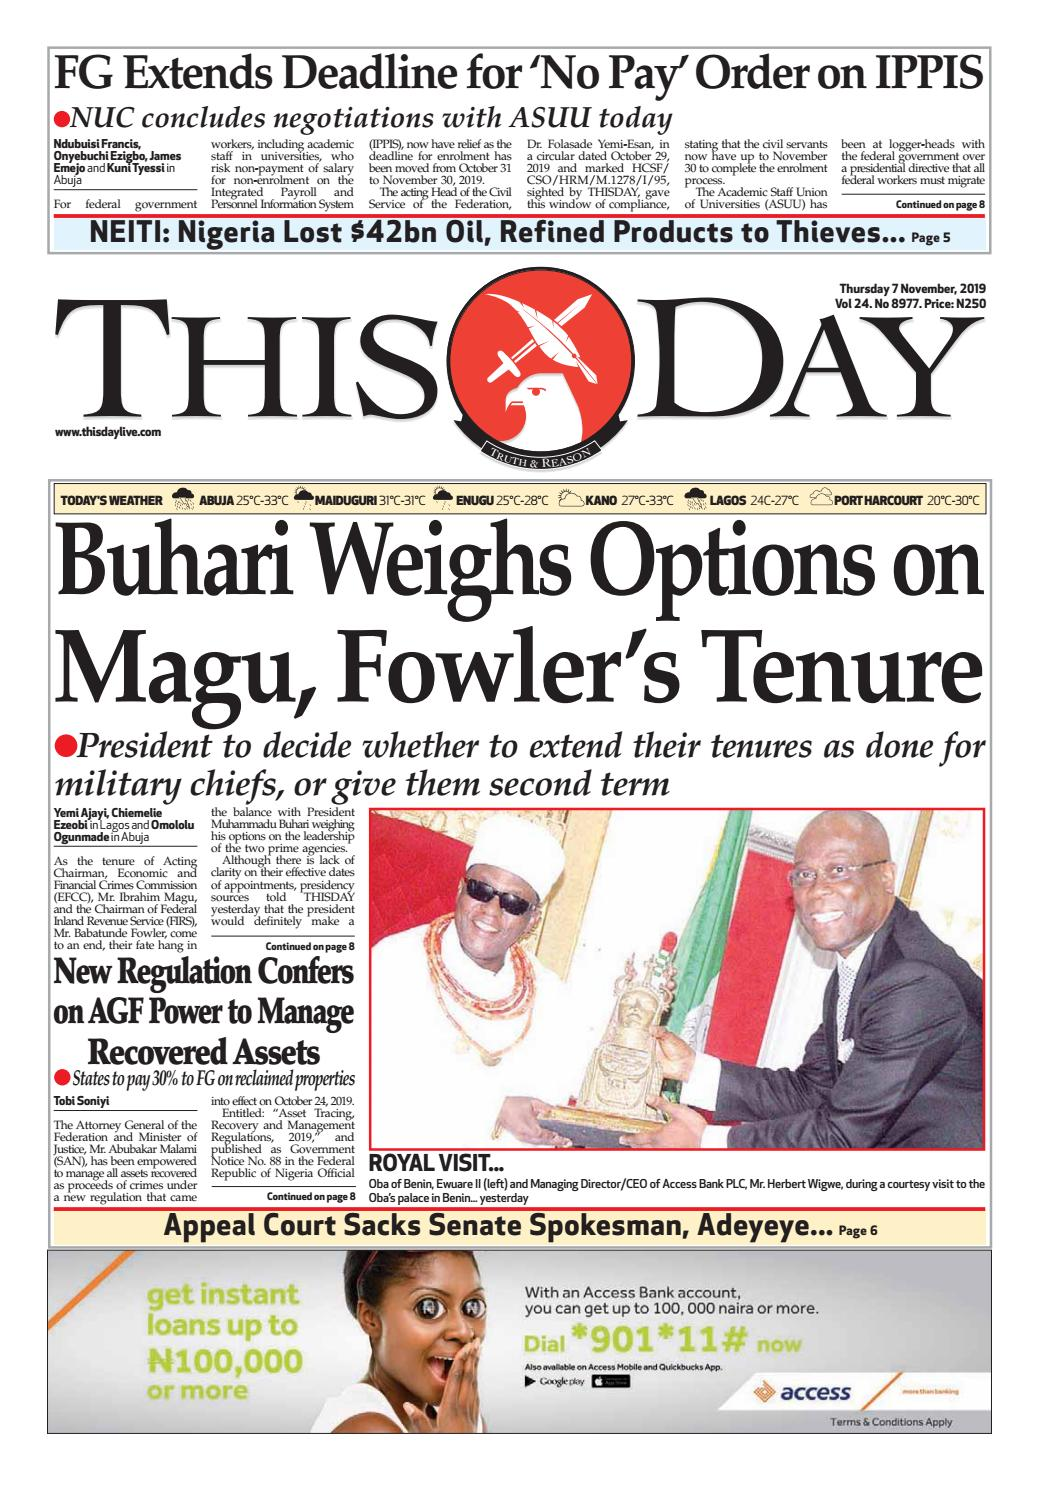 THURSDAY 7TH NOVEMBER 2019 by THISDAY Newspapers Ltd issuu